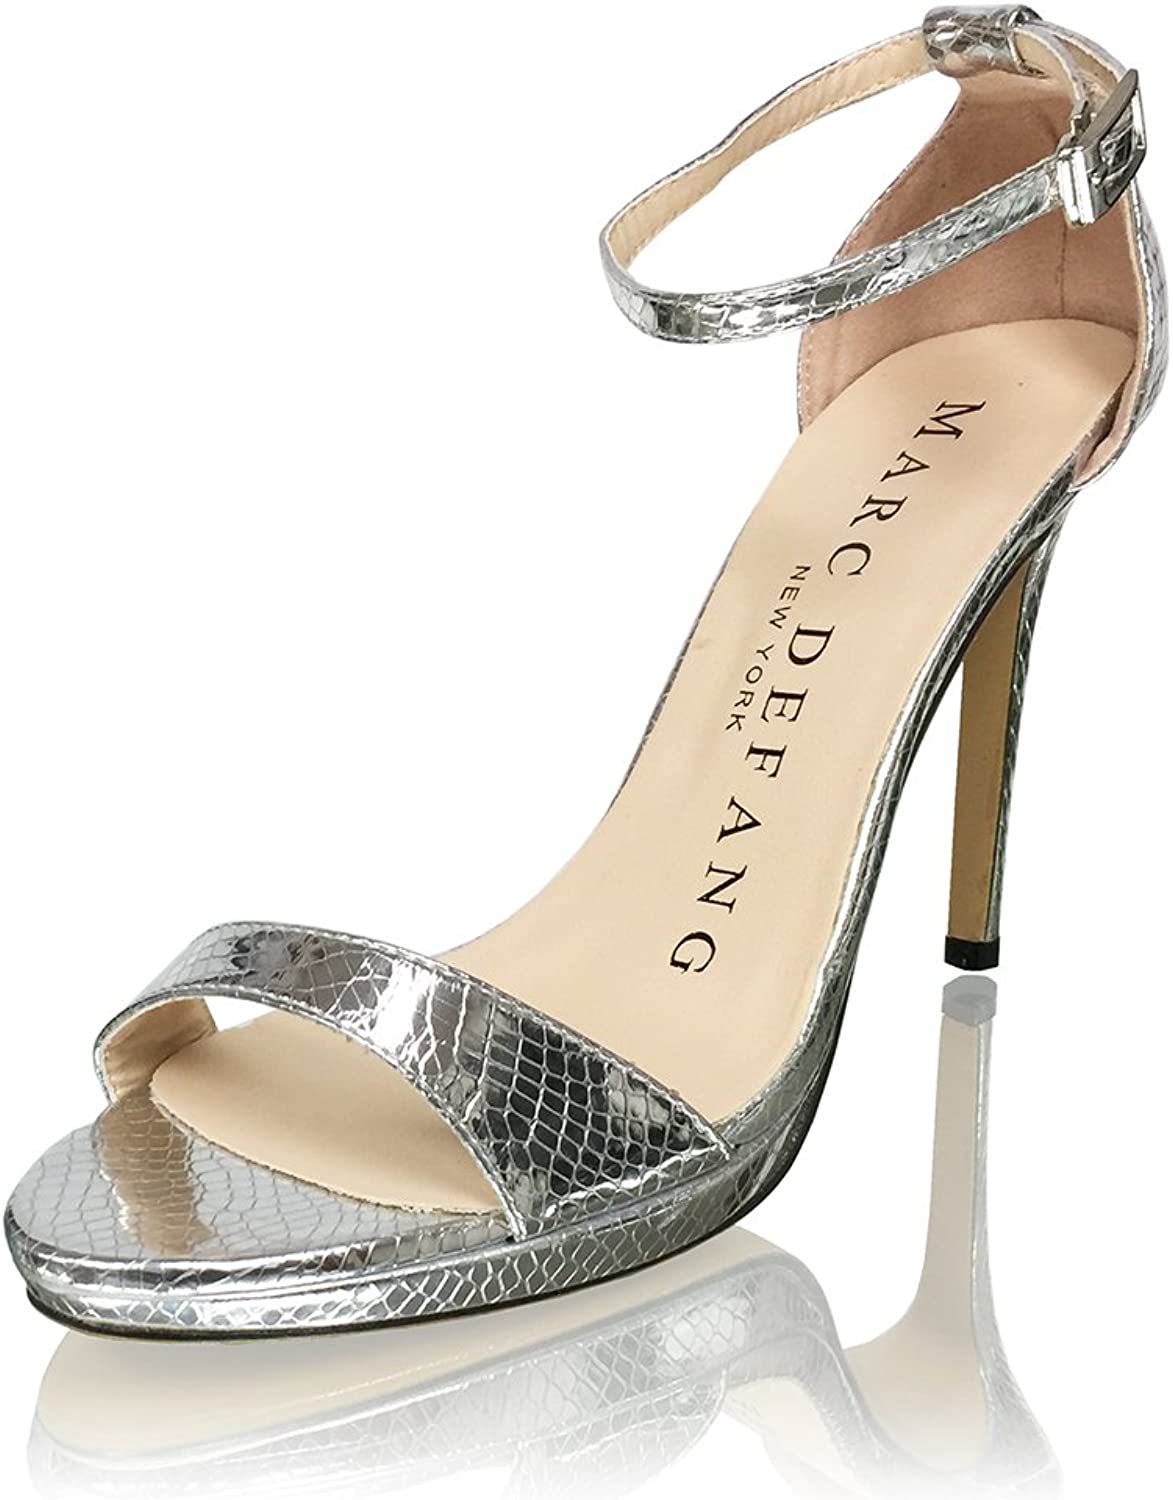 Marc Defang New York Women's Patent Leather 4  Sandal Heels with 1 2 Platforms